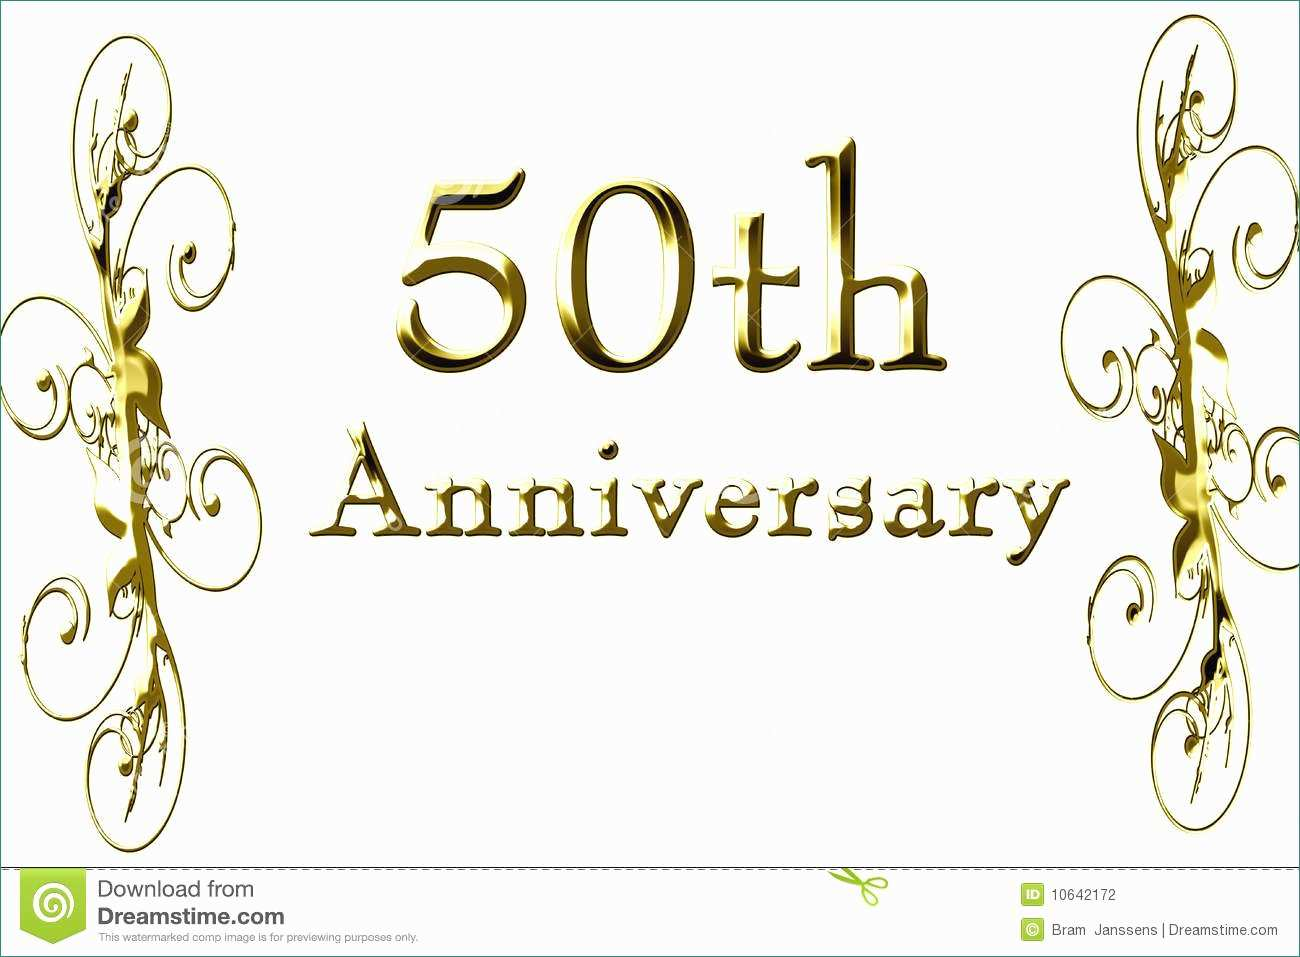 Clipart 50th Wedding Anniversary Conventional 50th Anniversary Clip.